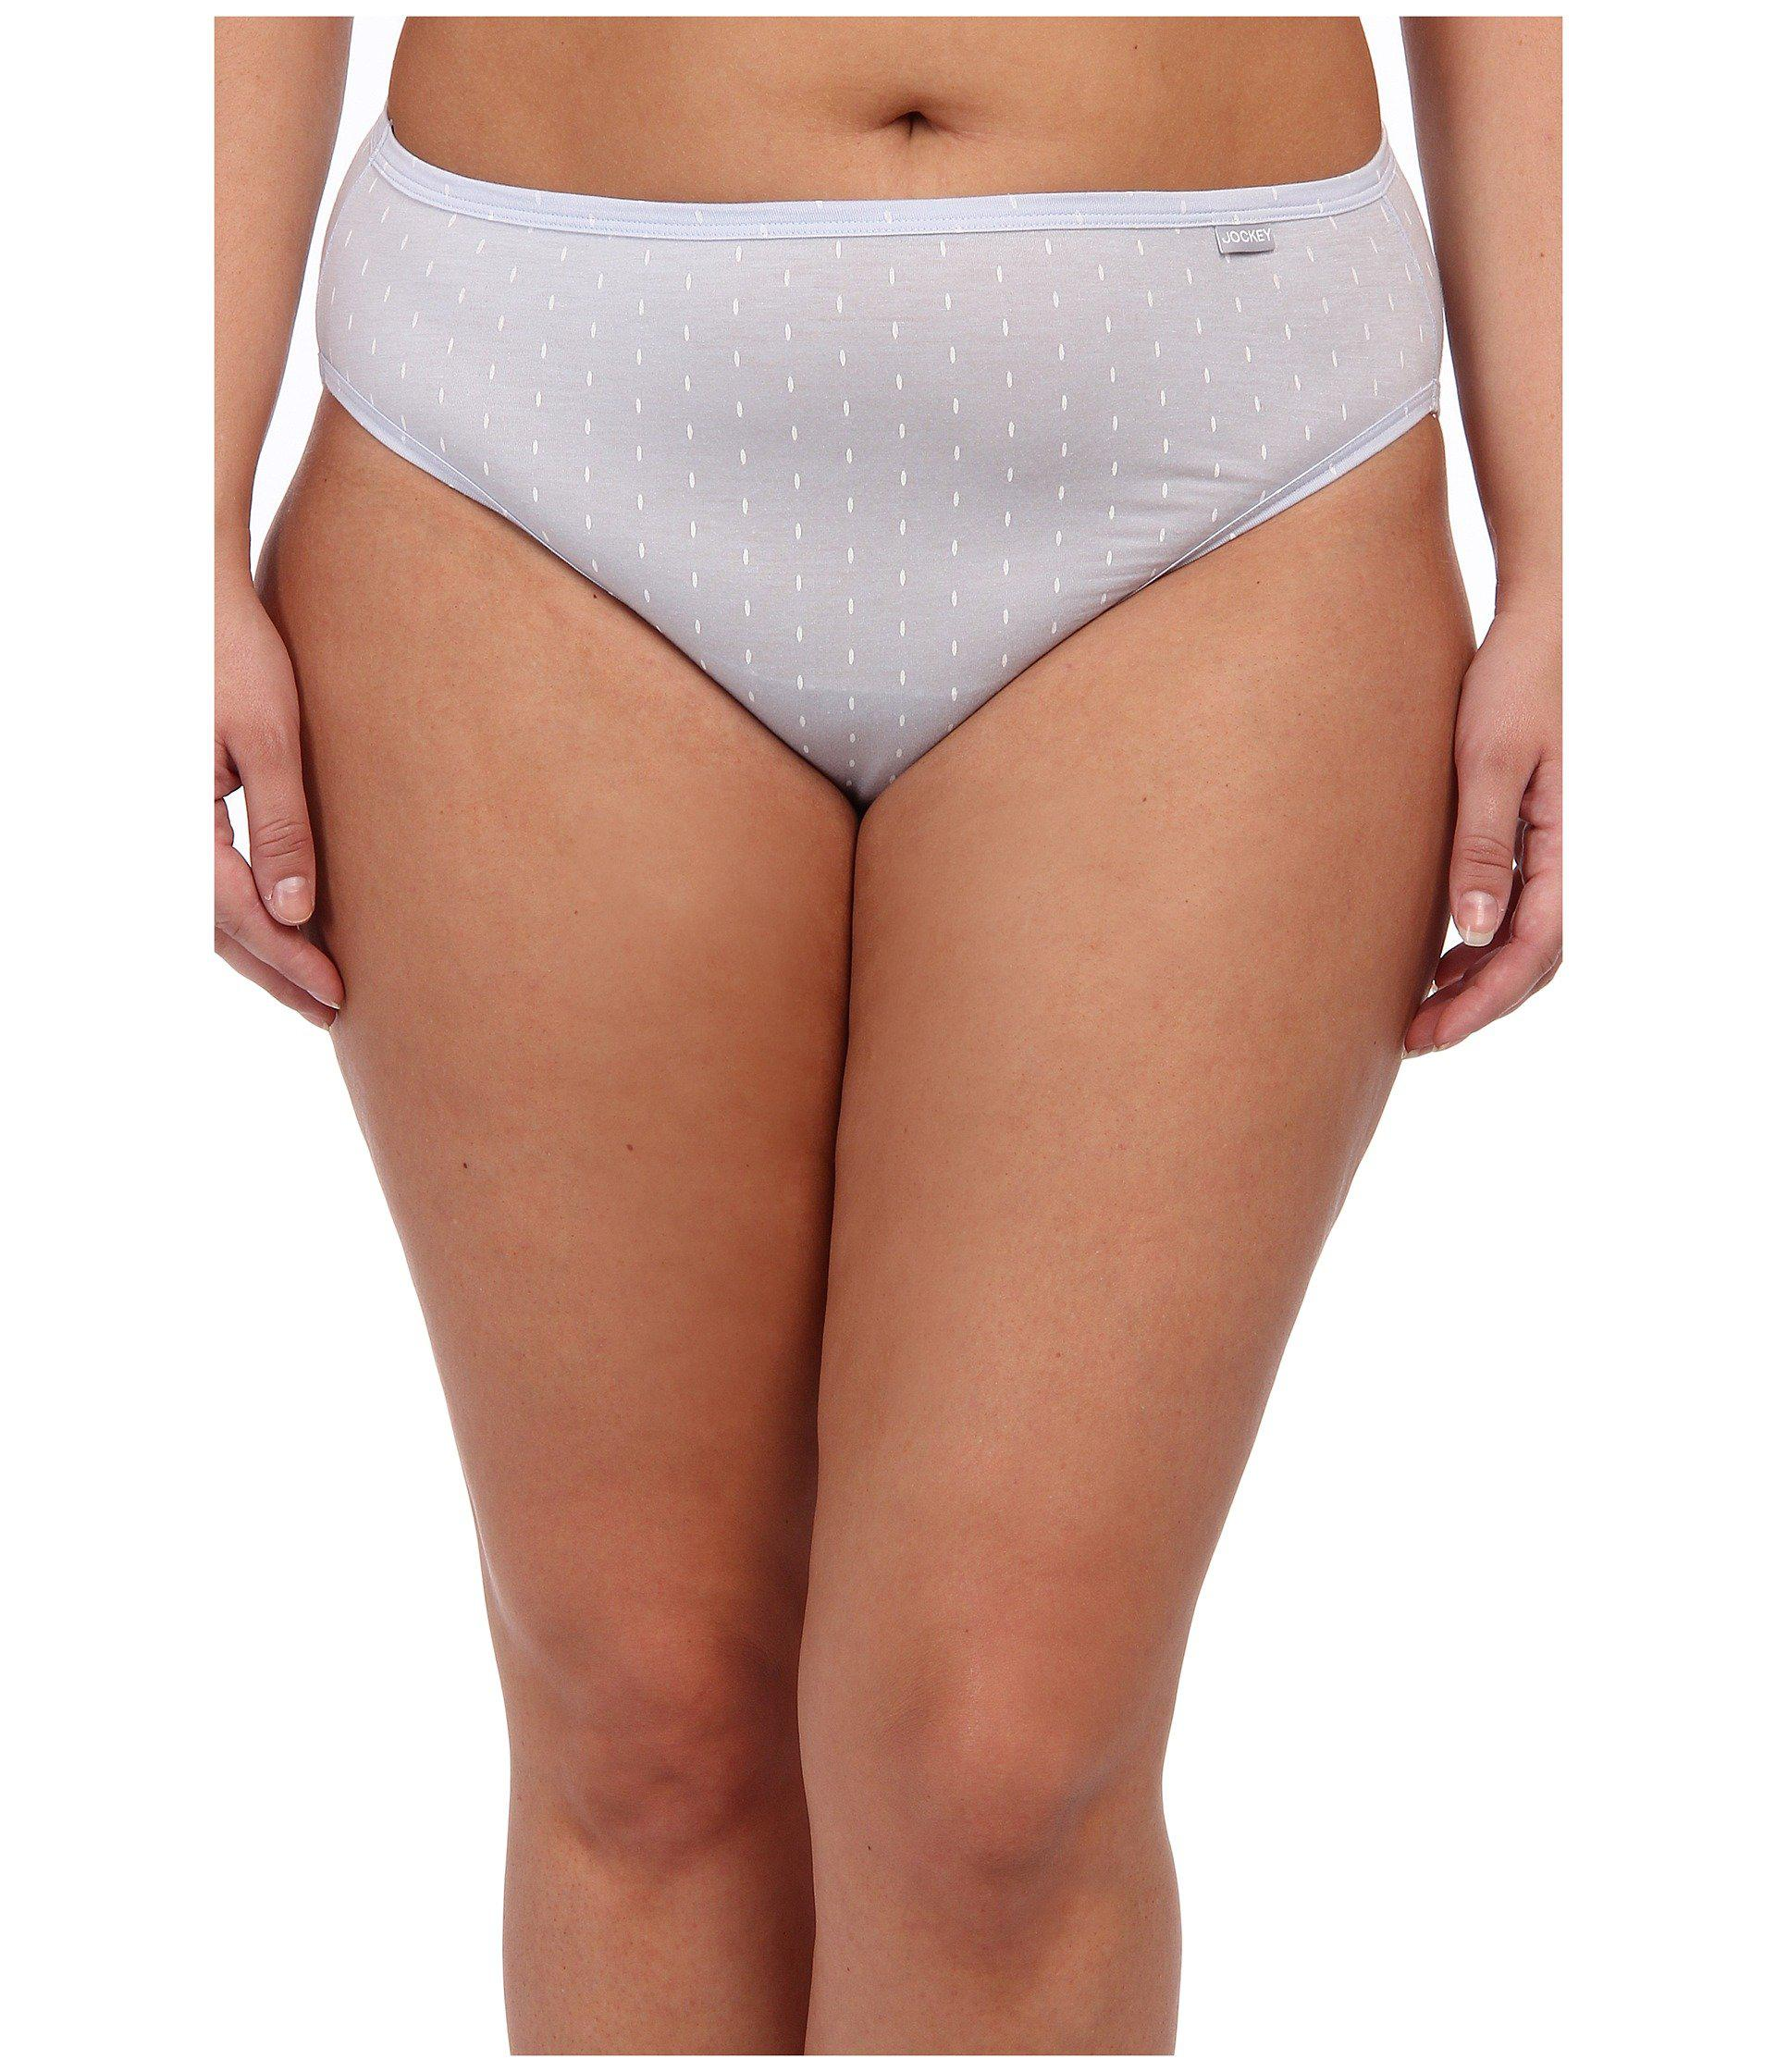 88288a68a82c8 Lyst - Jockey Elance(r) Supersoft French Cut 3-pack (black light ivory)  Women s Underwear in White